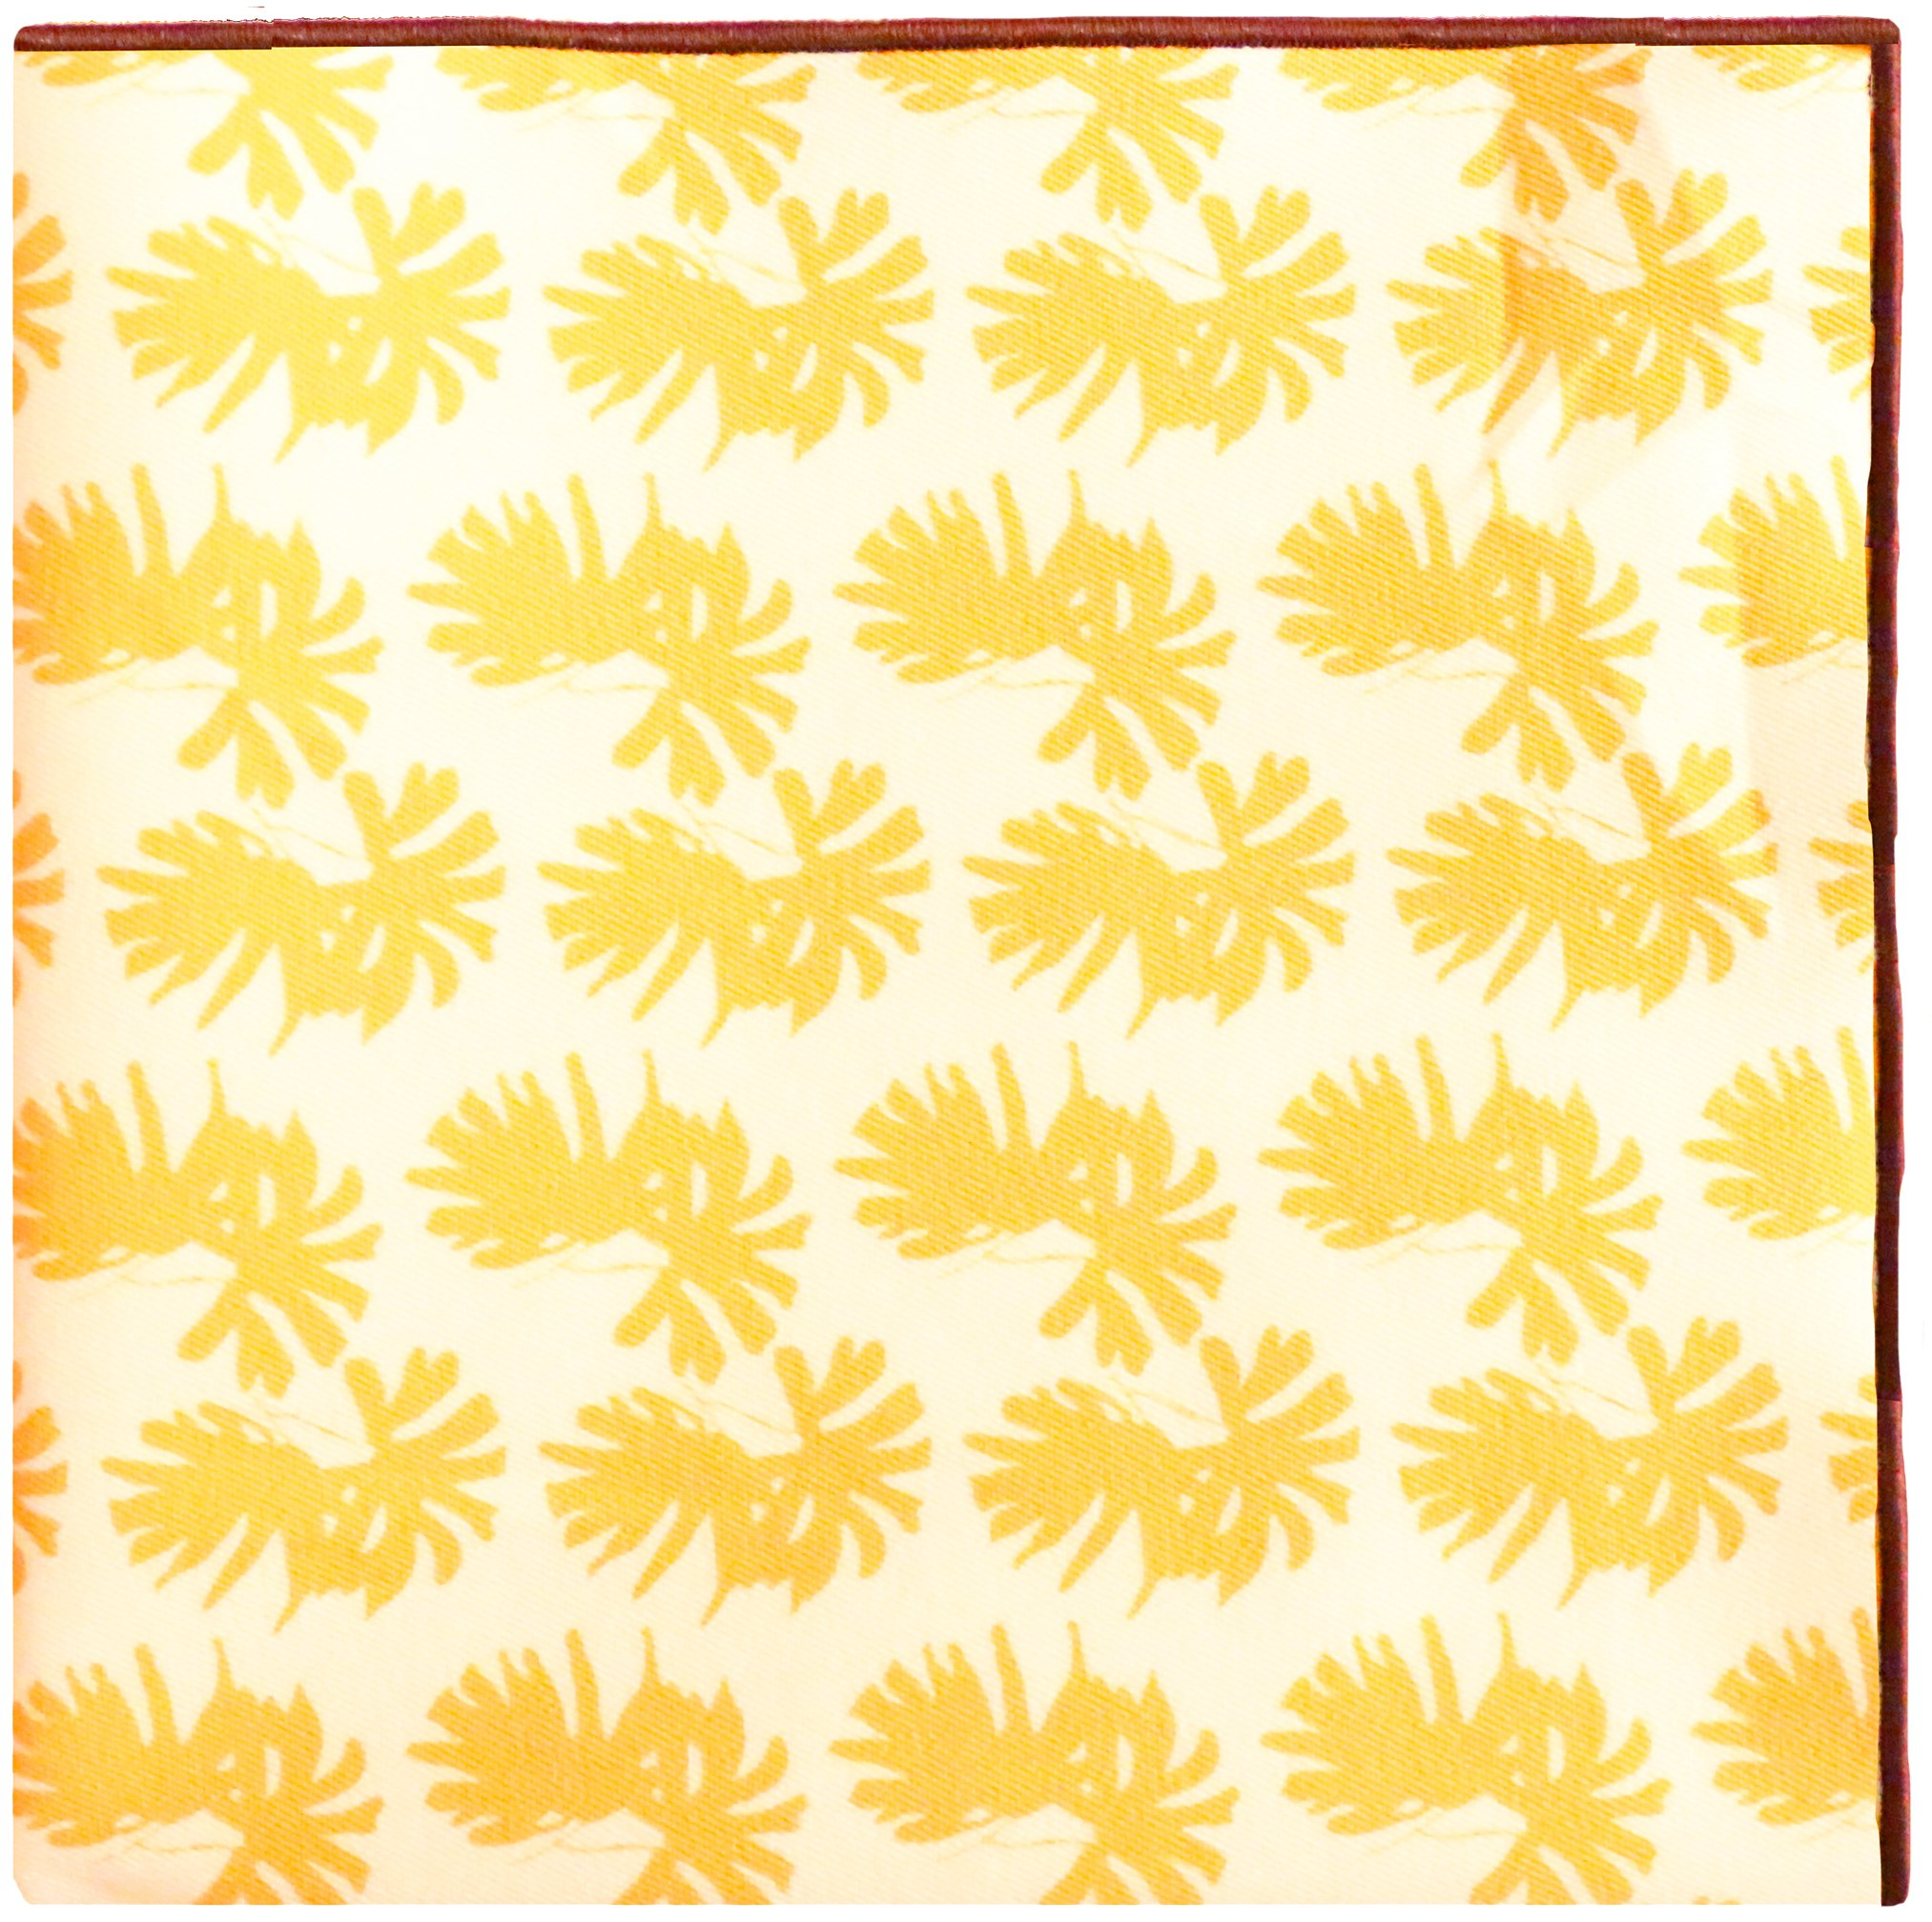 Yellow & White Print with Brown Button Men's Pocket Square by The Detailed Male by The Detailed Male (Image #1)